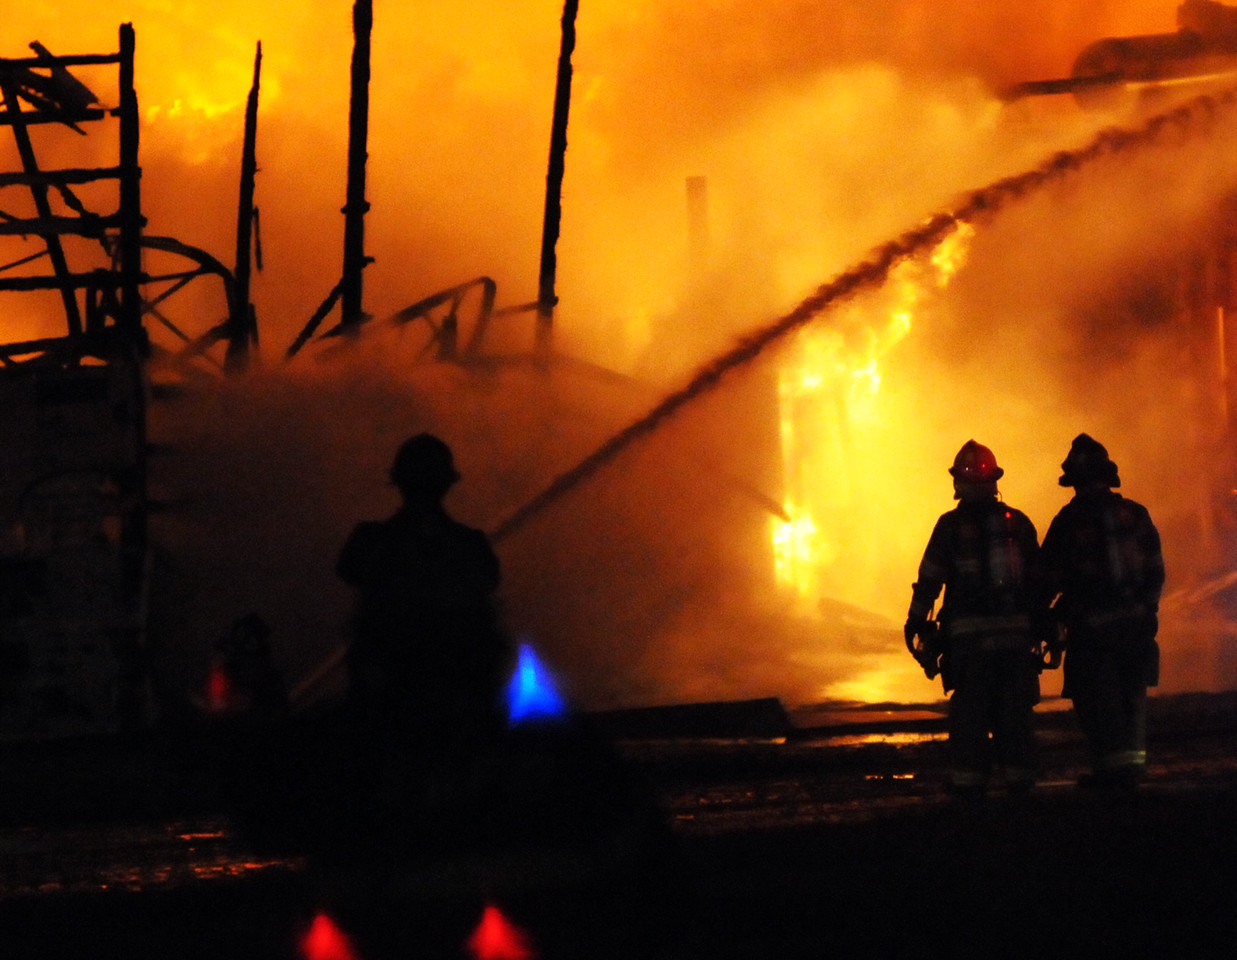 Firefighters from two dozen departments and four counties responded  to assist in a commercial building structure fire at Commodity Resource Corp. on 2773 Caledonia-Le Roy Road in Caledonia